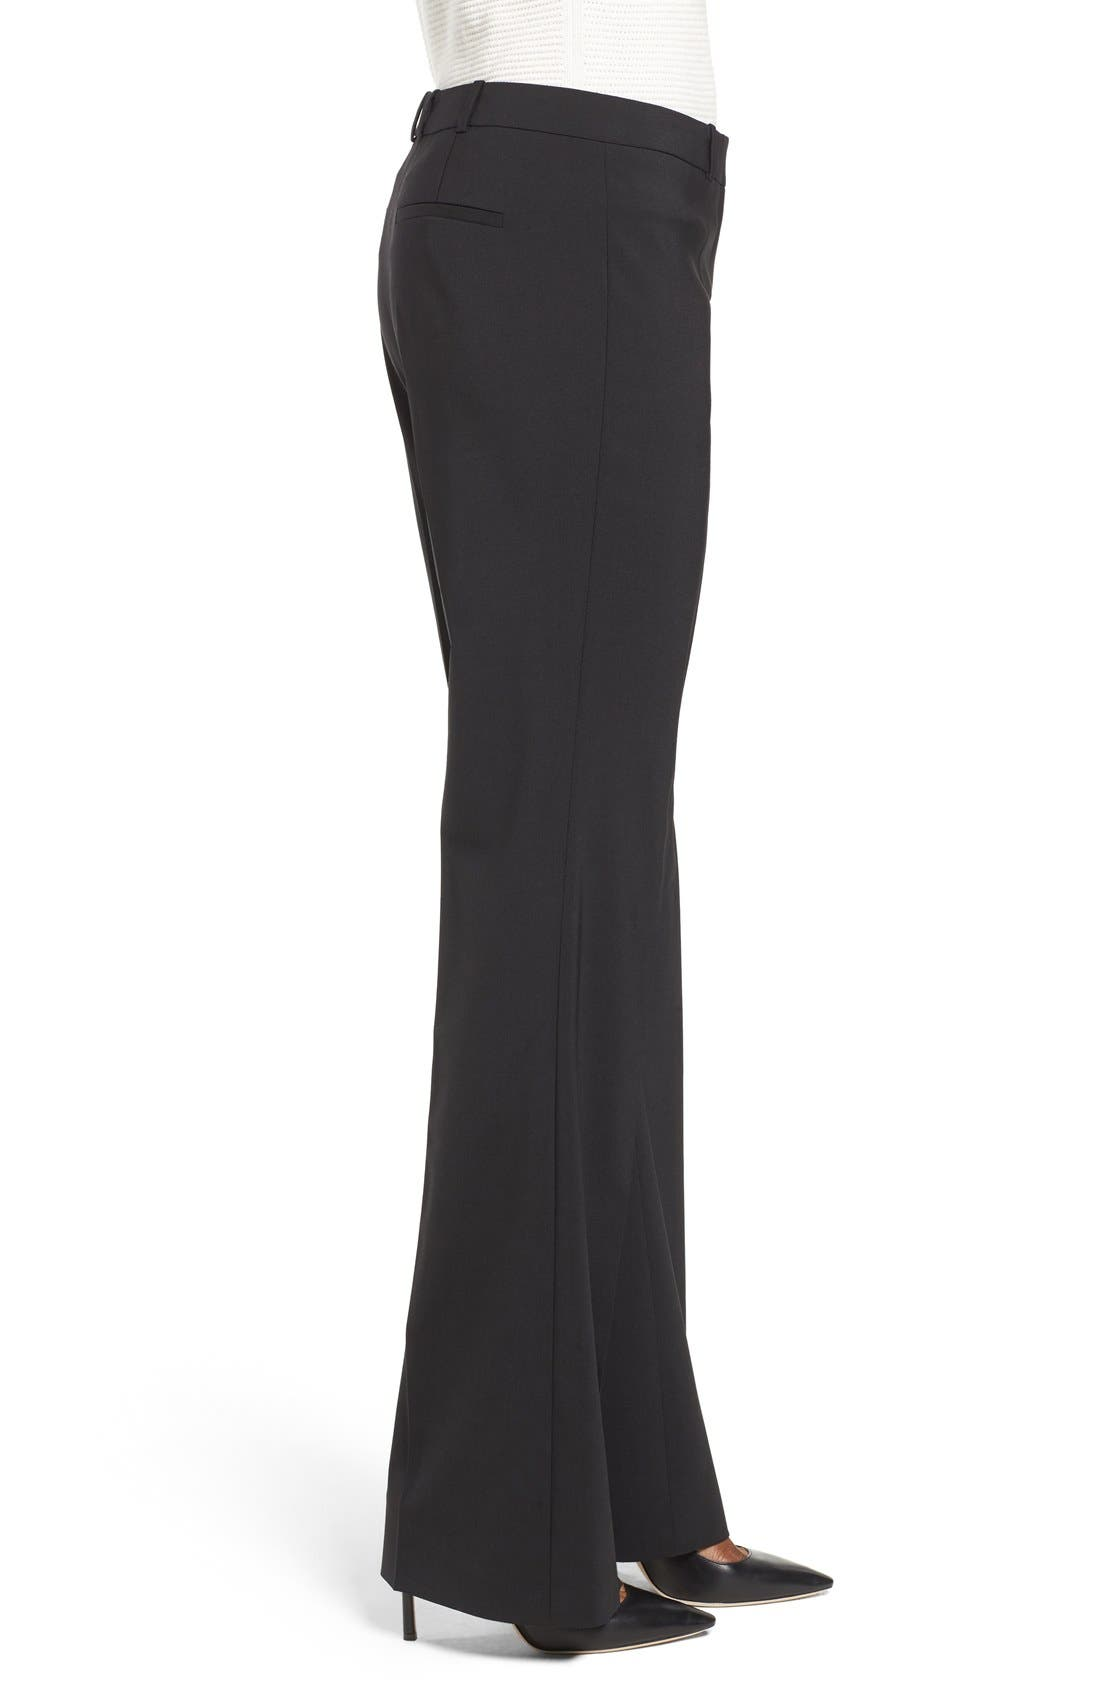 BOSS, Tulea3 Tropical Stretch Wool Trousers, Alternate thumbnail 5, color, BLACK